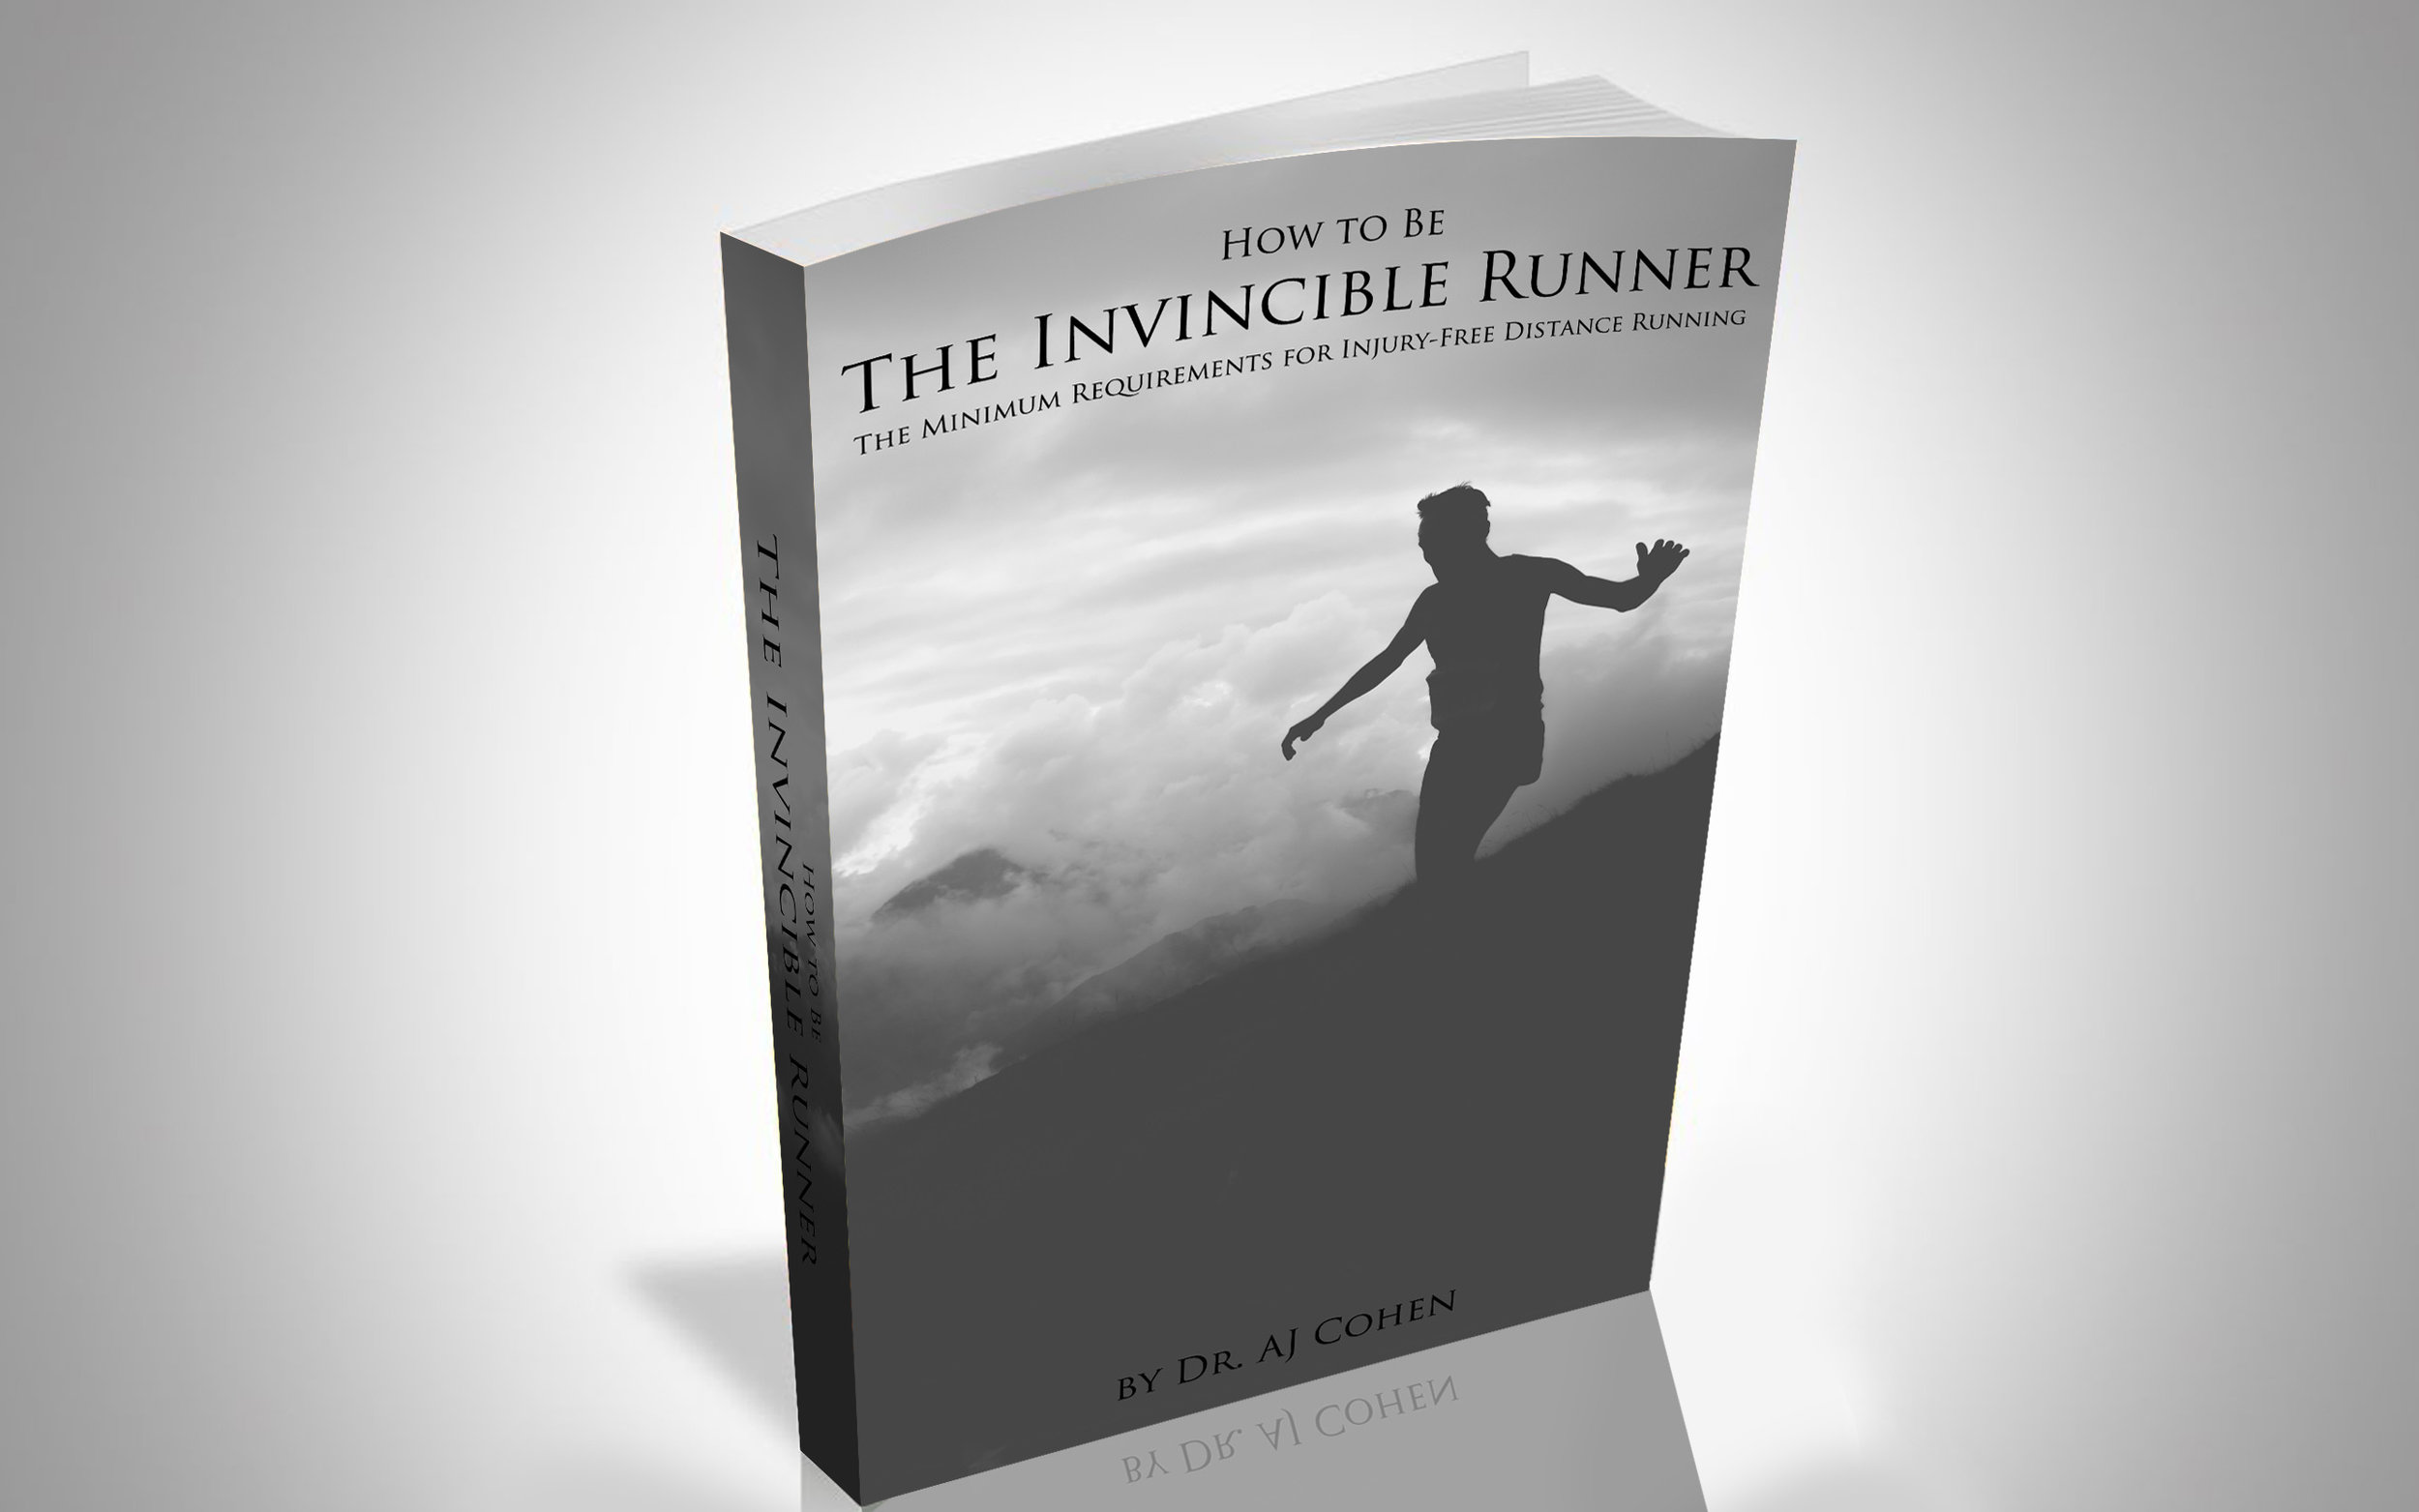 How to Be The Invicible Runner - Download my FREE Runner eBook